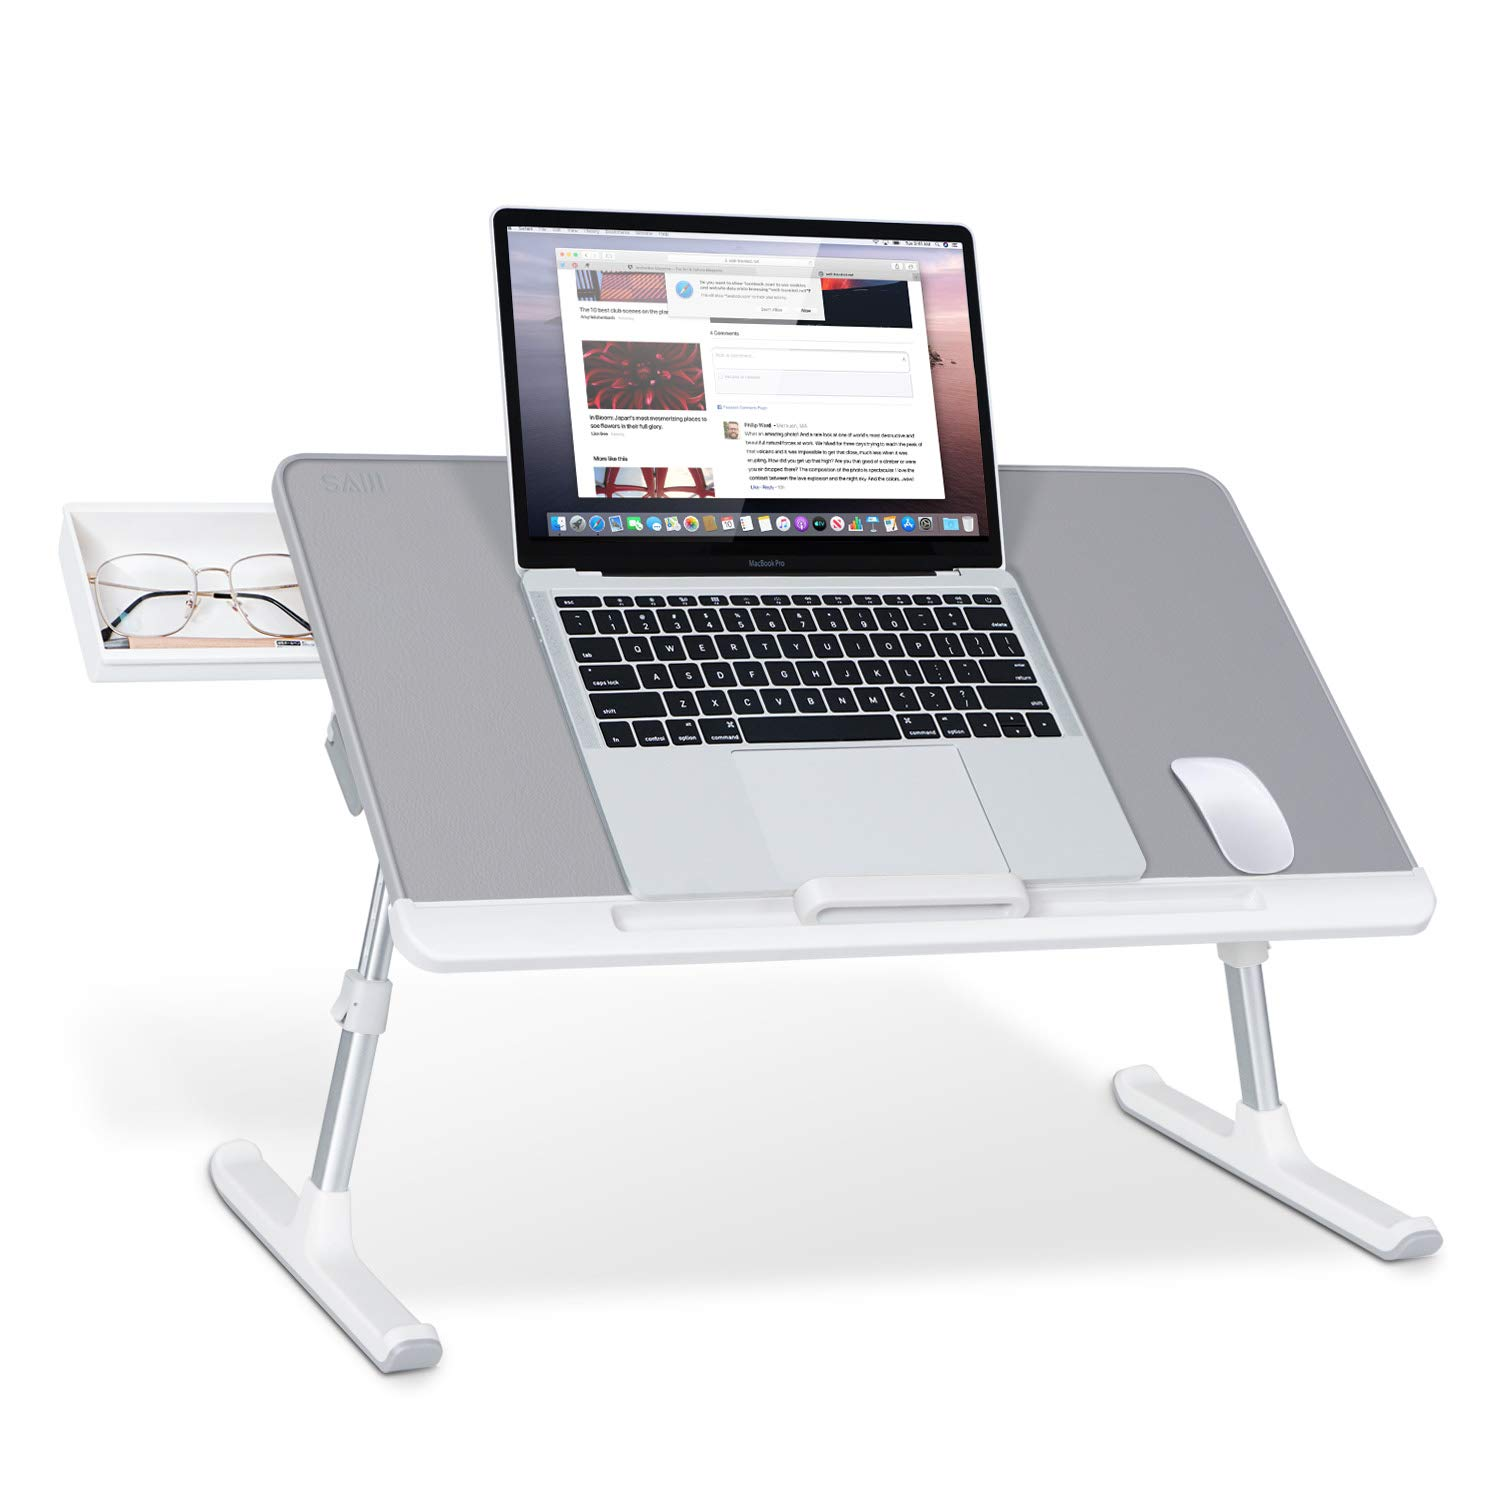 Picture of: Saiji Laptop Bed Tray Table Adjustable Pvc Leather Laptop Bed Table Portable Standing Desk With Storage Drawer Foldable Lap Tablet Table For Sofa Couch Floor Gray Large